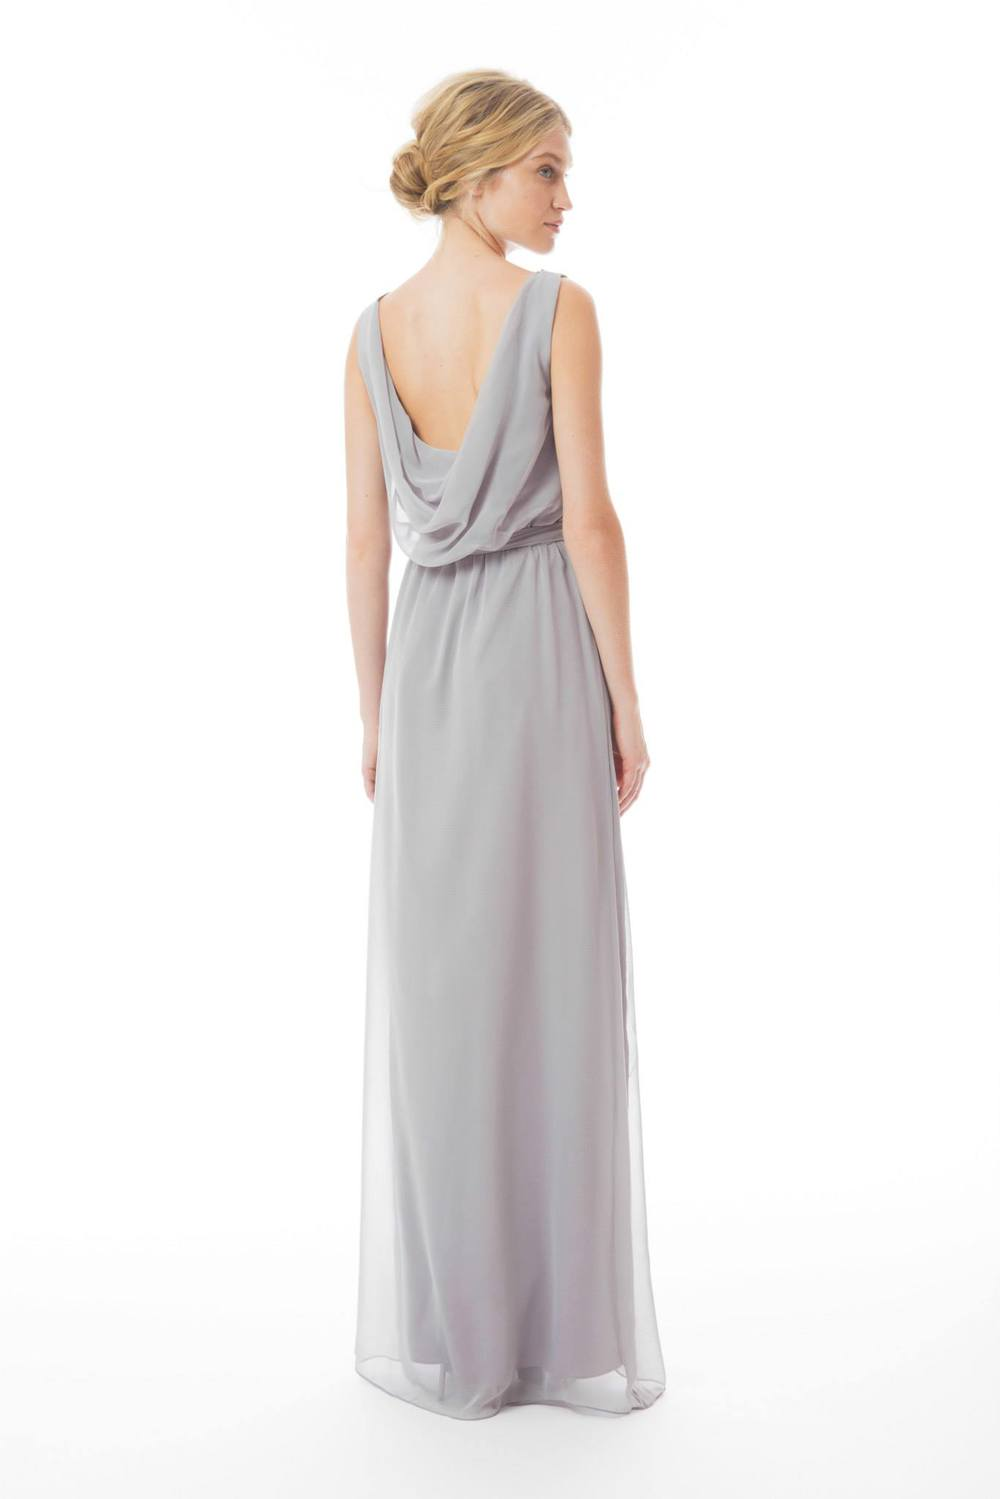 grey chiffon bridesmaid dress joanna august ct